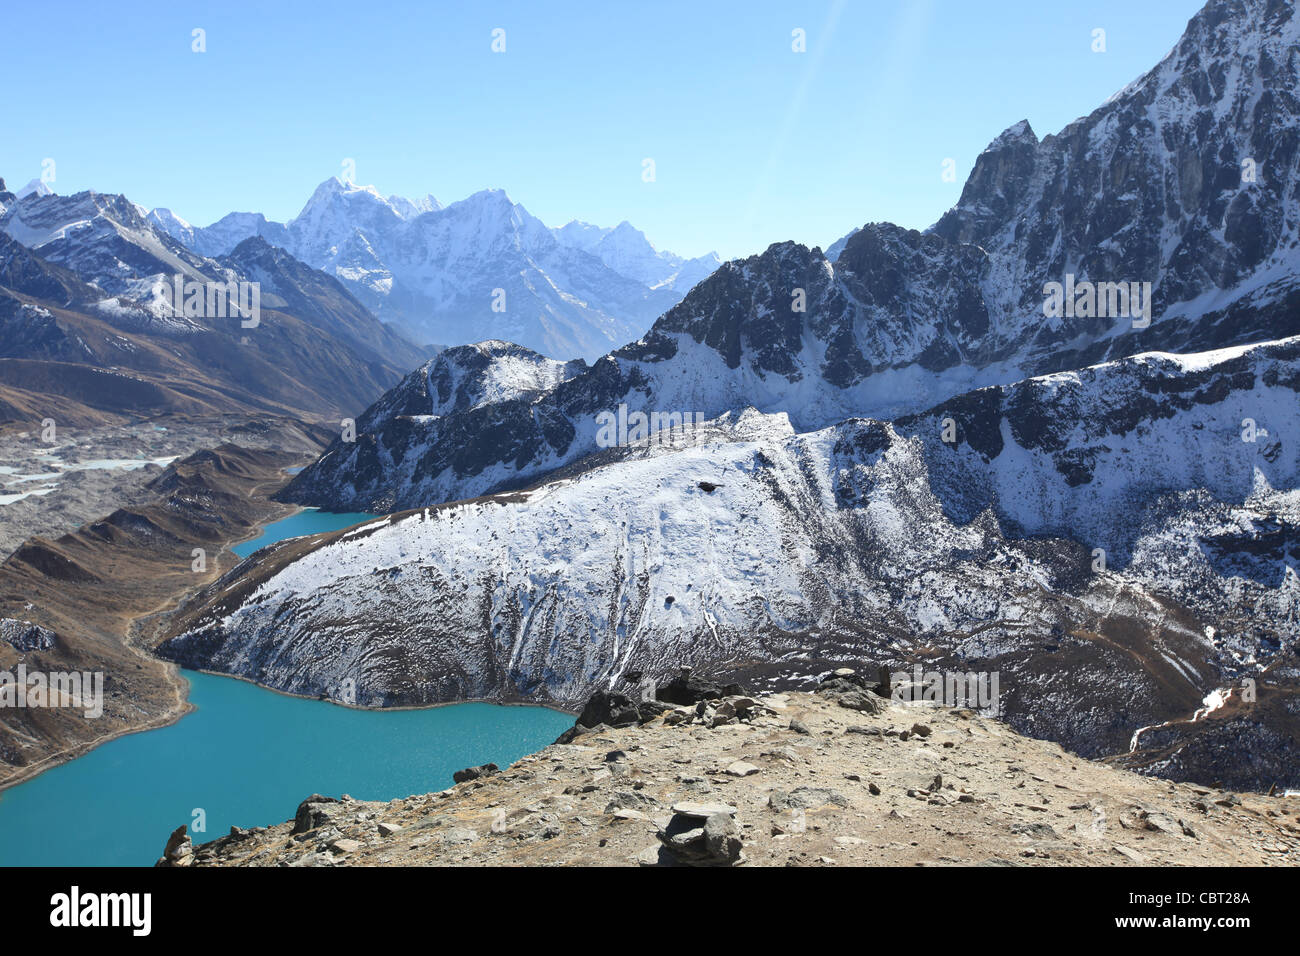 View from Gokyo-Ri of the Gokyo Village, Valley Glacier and Lake in the Himalayas - Stock Image